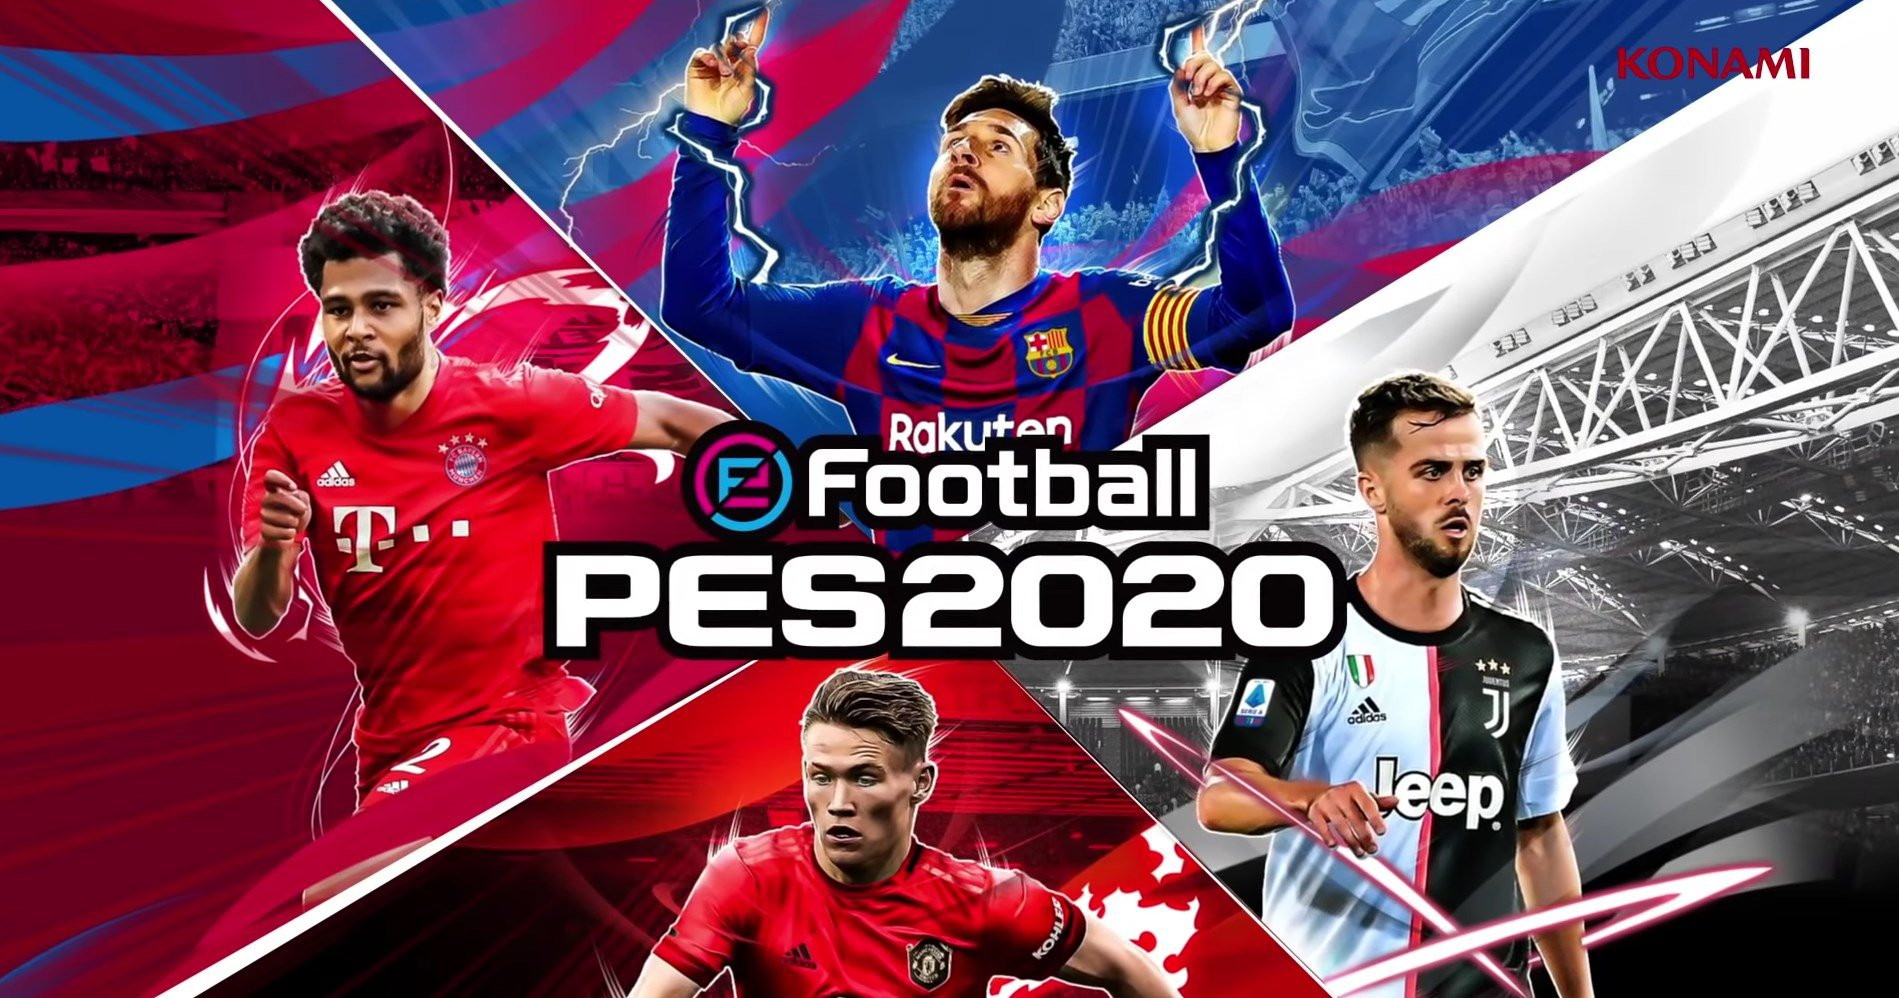 The Top PES Editions